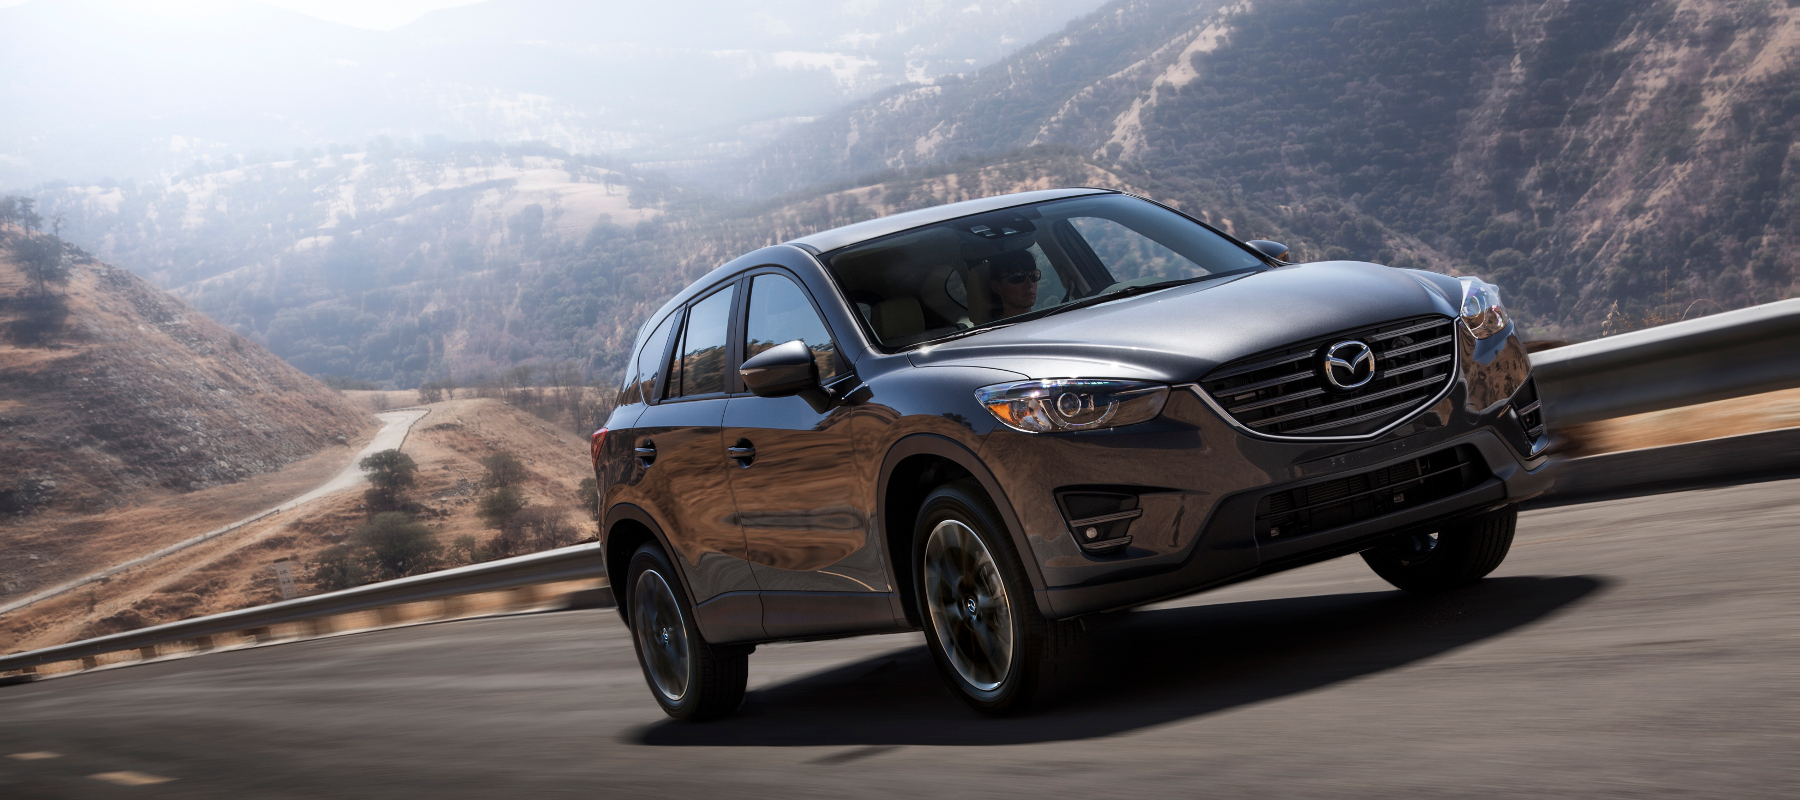 Checked Out Any Reviews Of The Mazda CX 5 Lately? Well, This Much Loved  Compact SUV Has Racked Up Positive Comments From Throughout The Automotive  World, ...